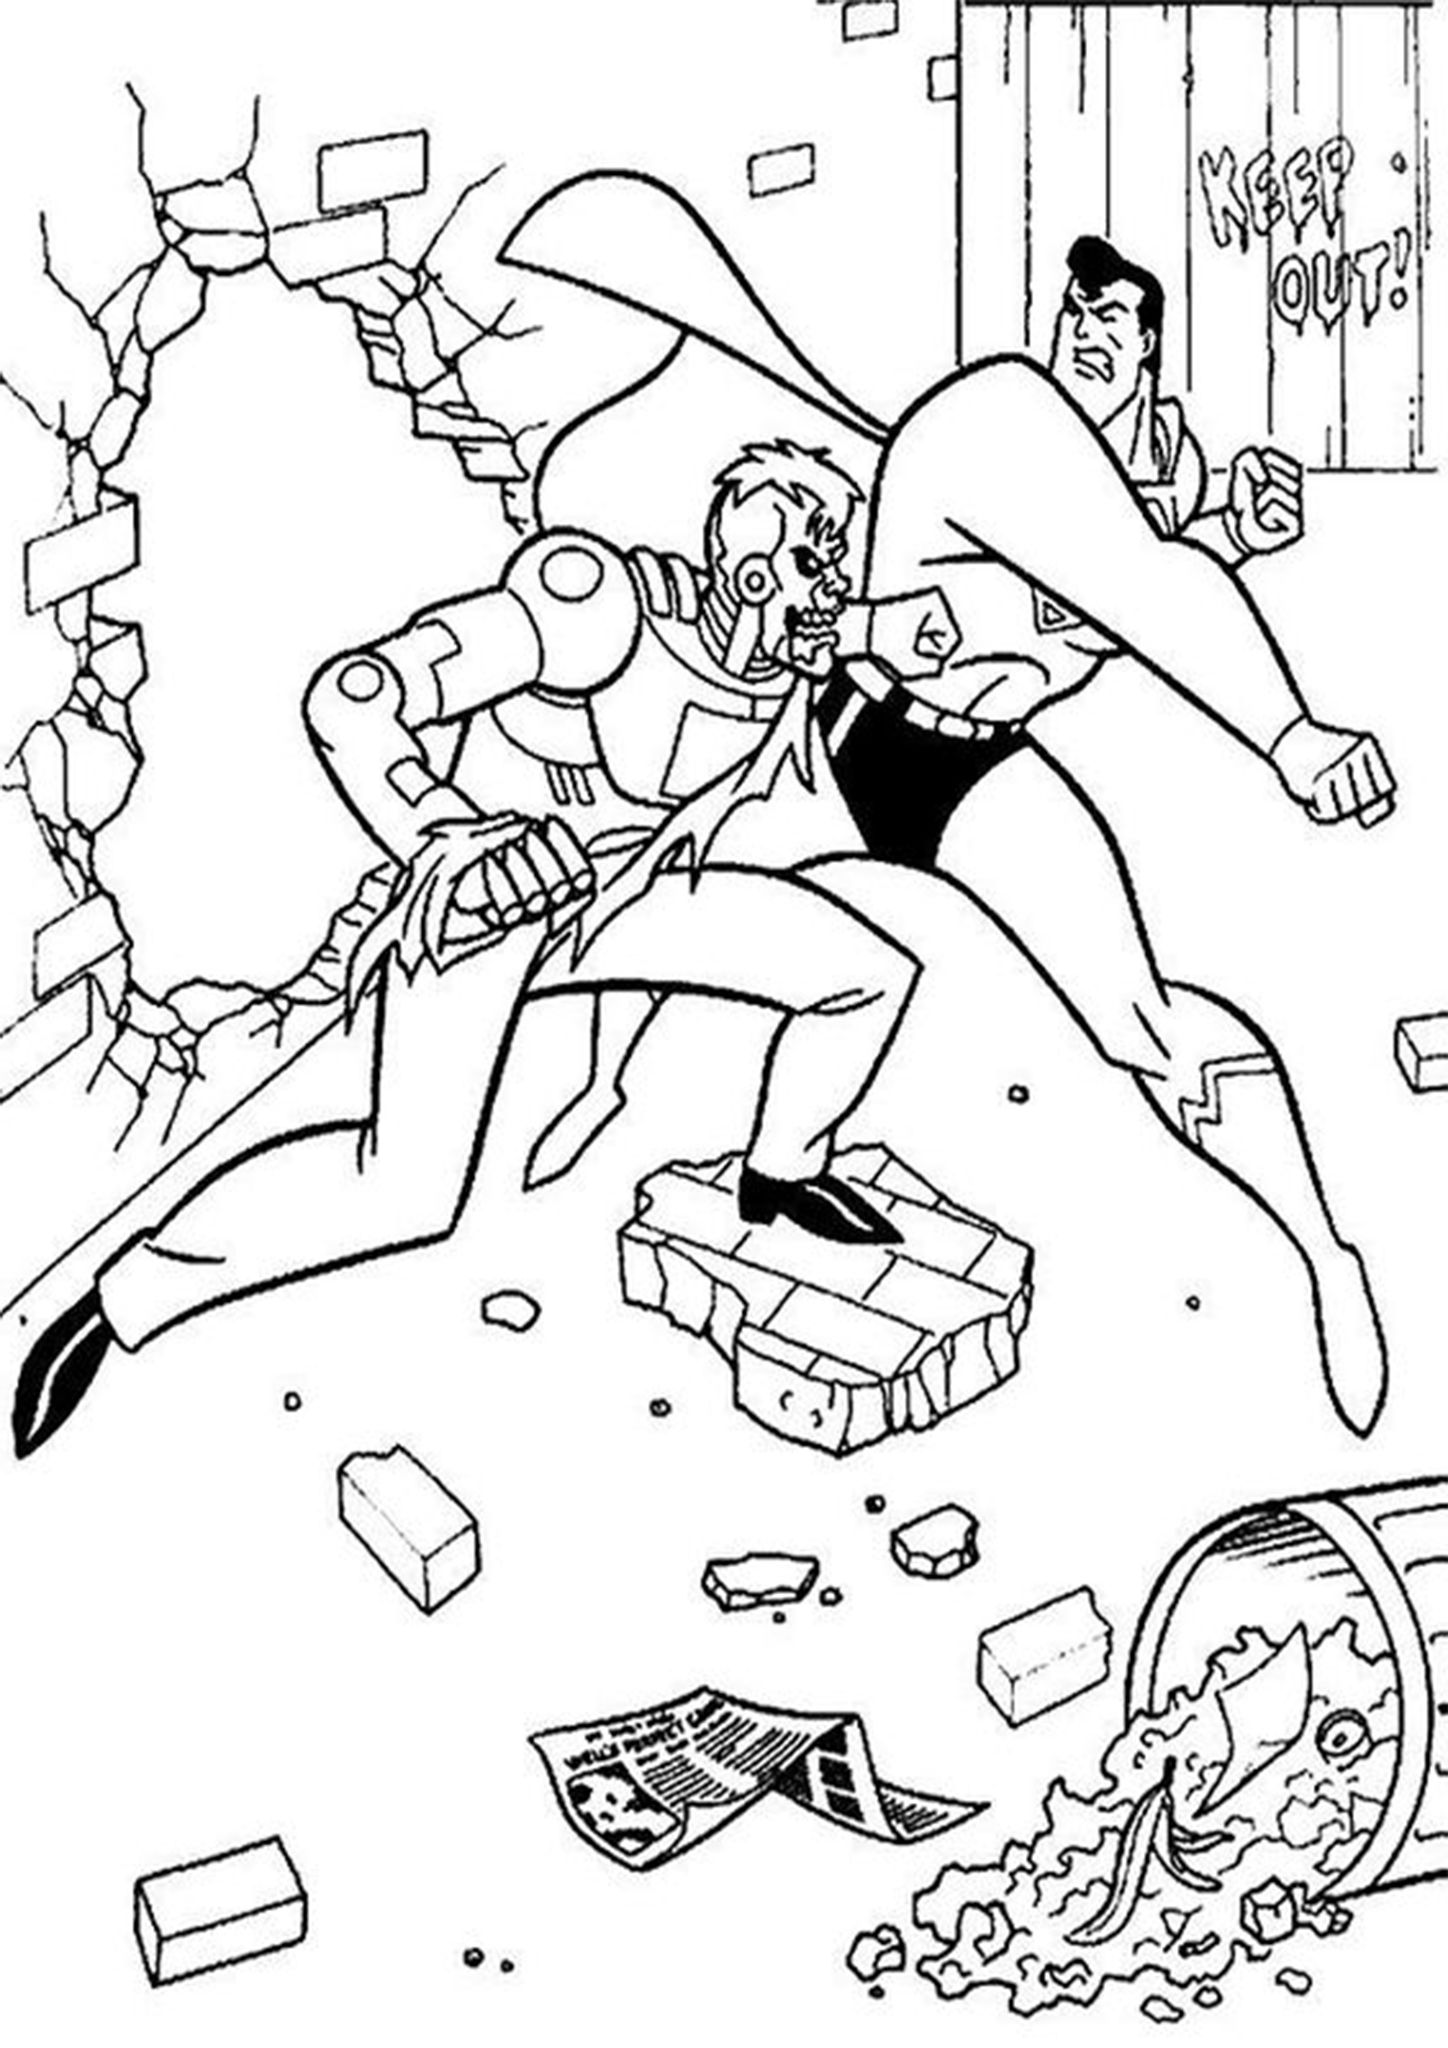 Free Easy To Print Superman Coloring Pages Superhero Coloring Pages Superman Coloring Pages Cartoon Coloring Pages